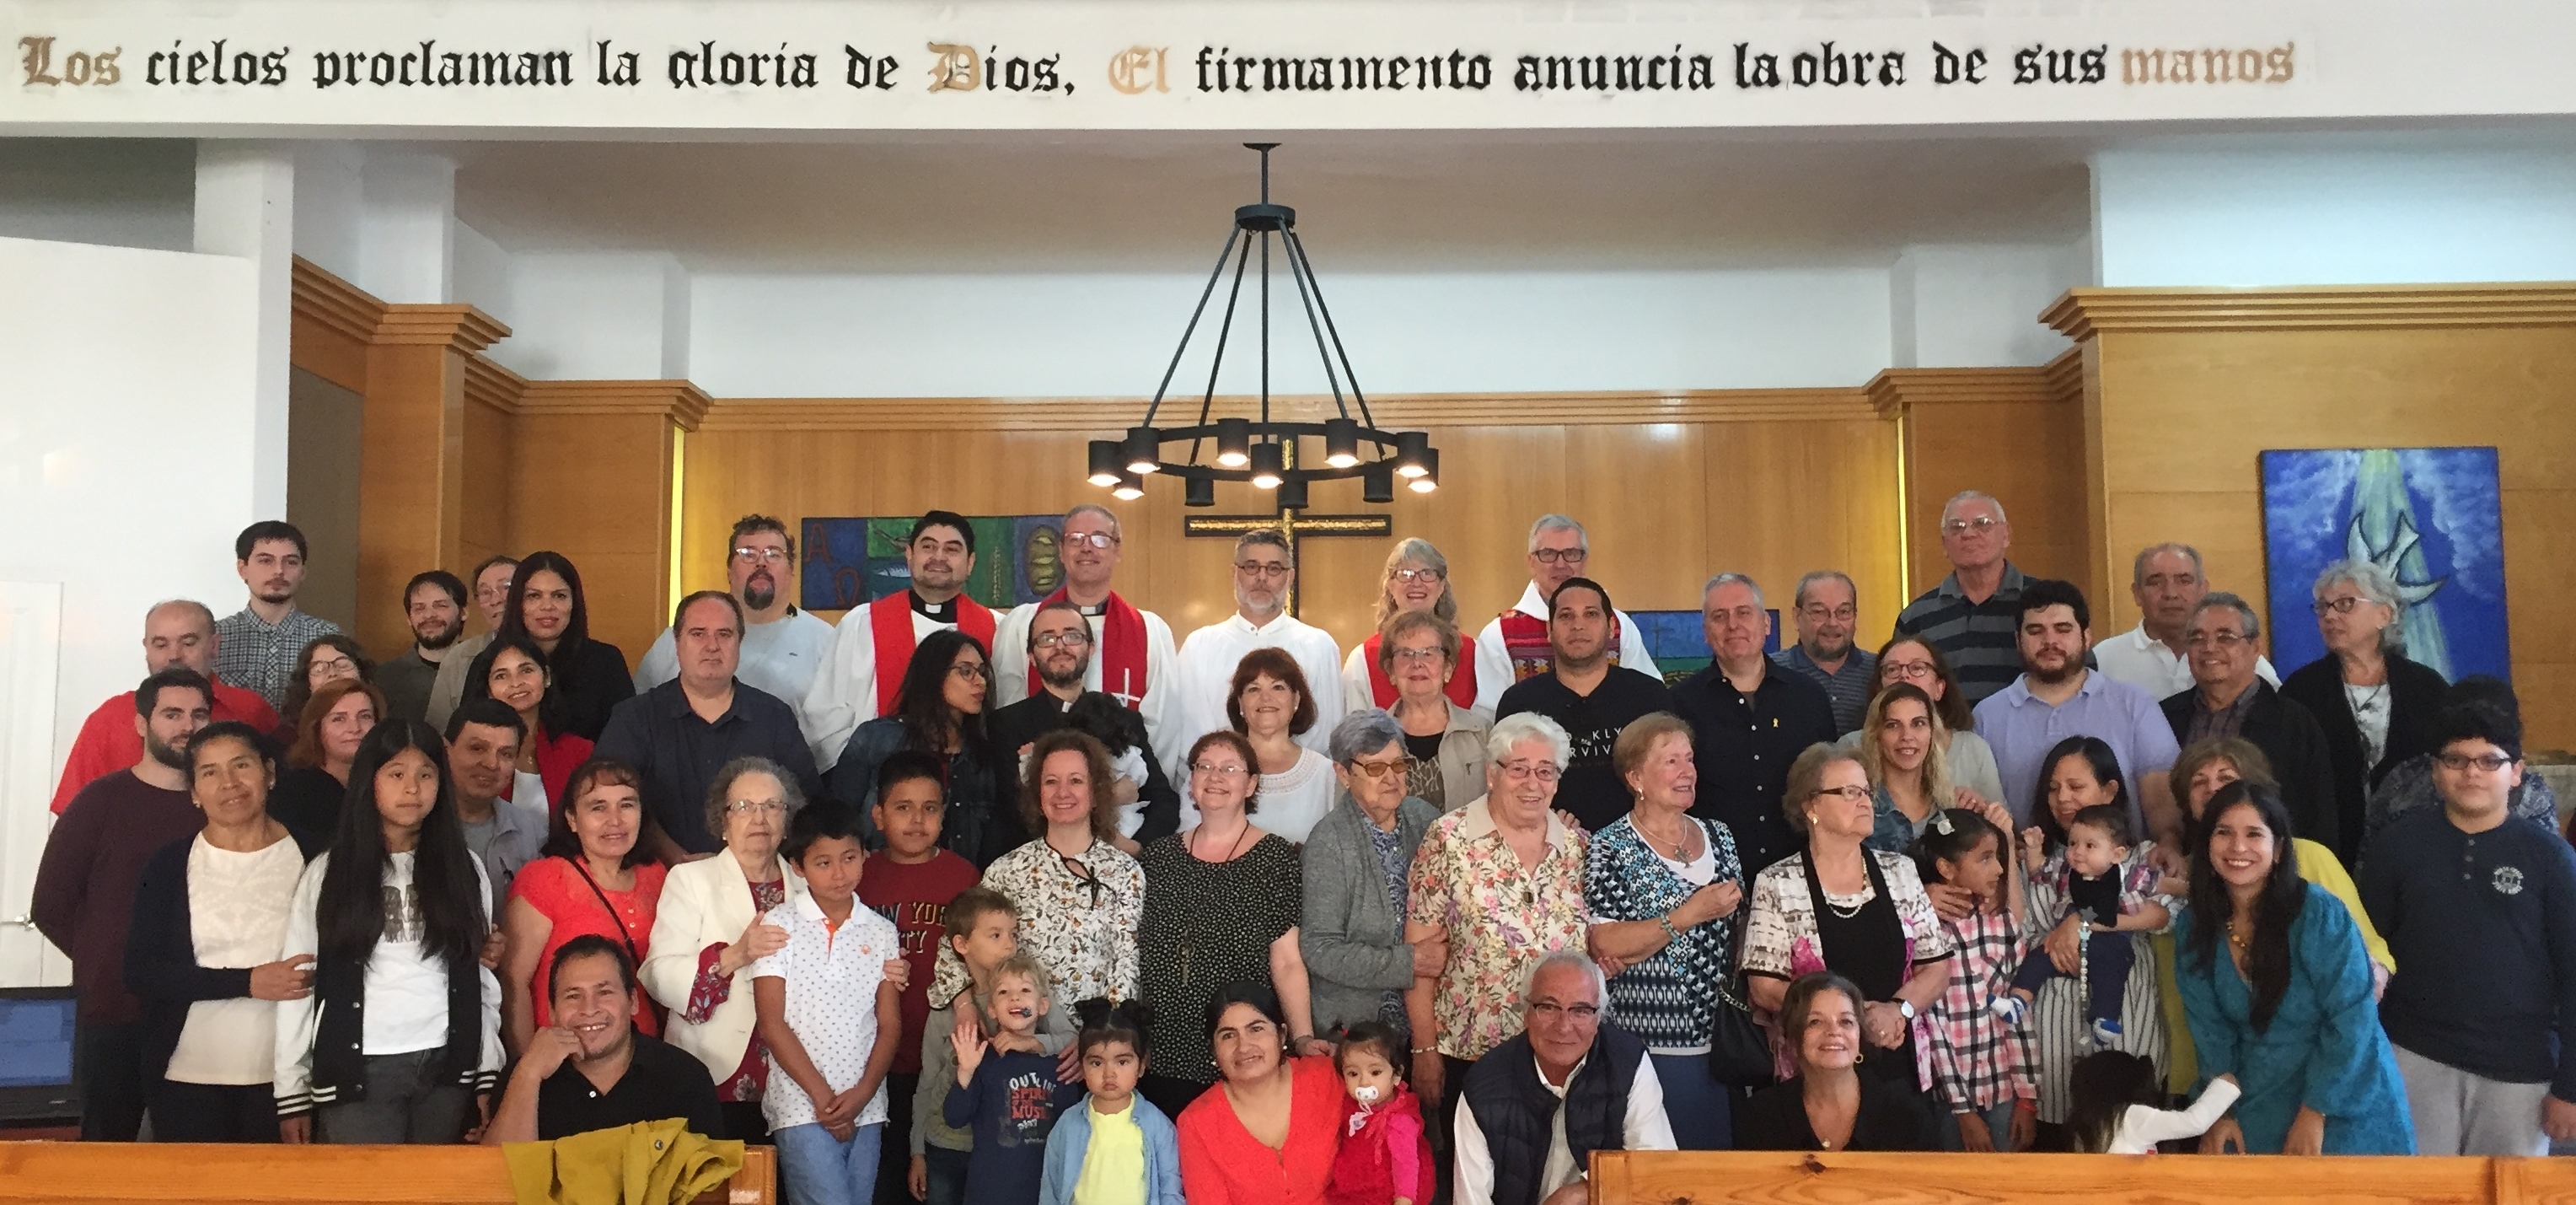 IERE Church in Sabadell Celebrates 115 Years